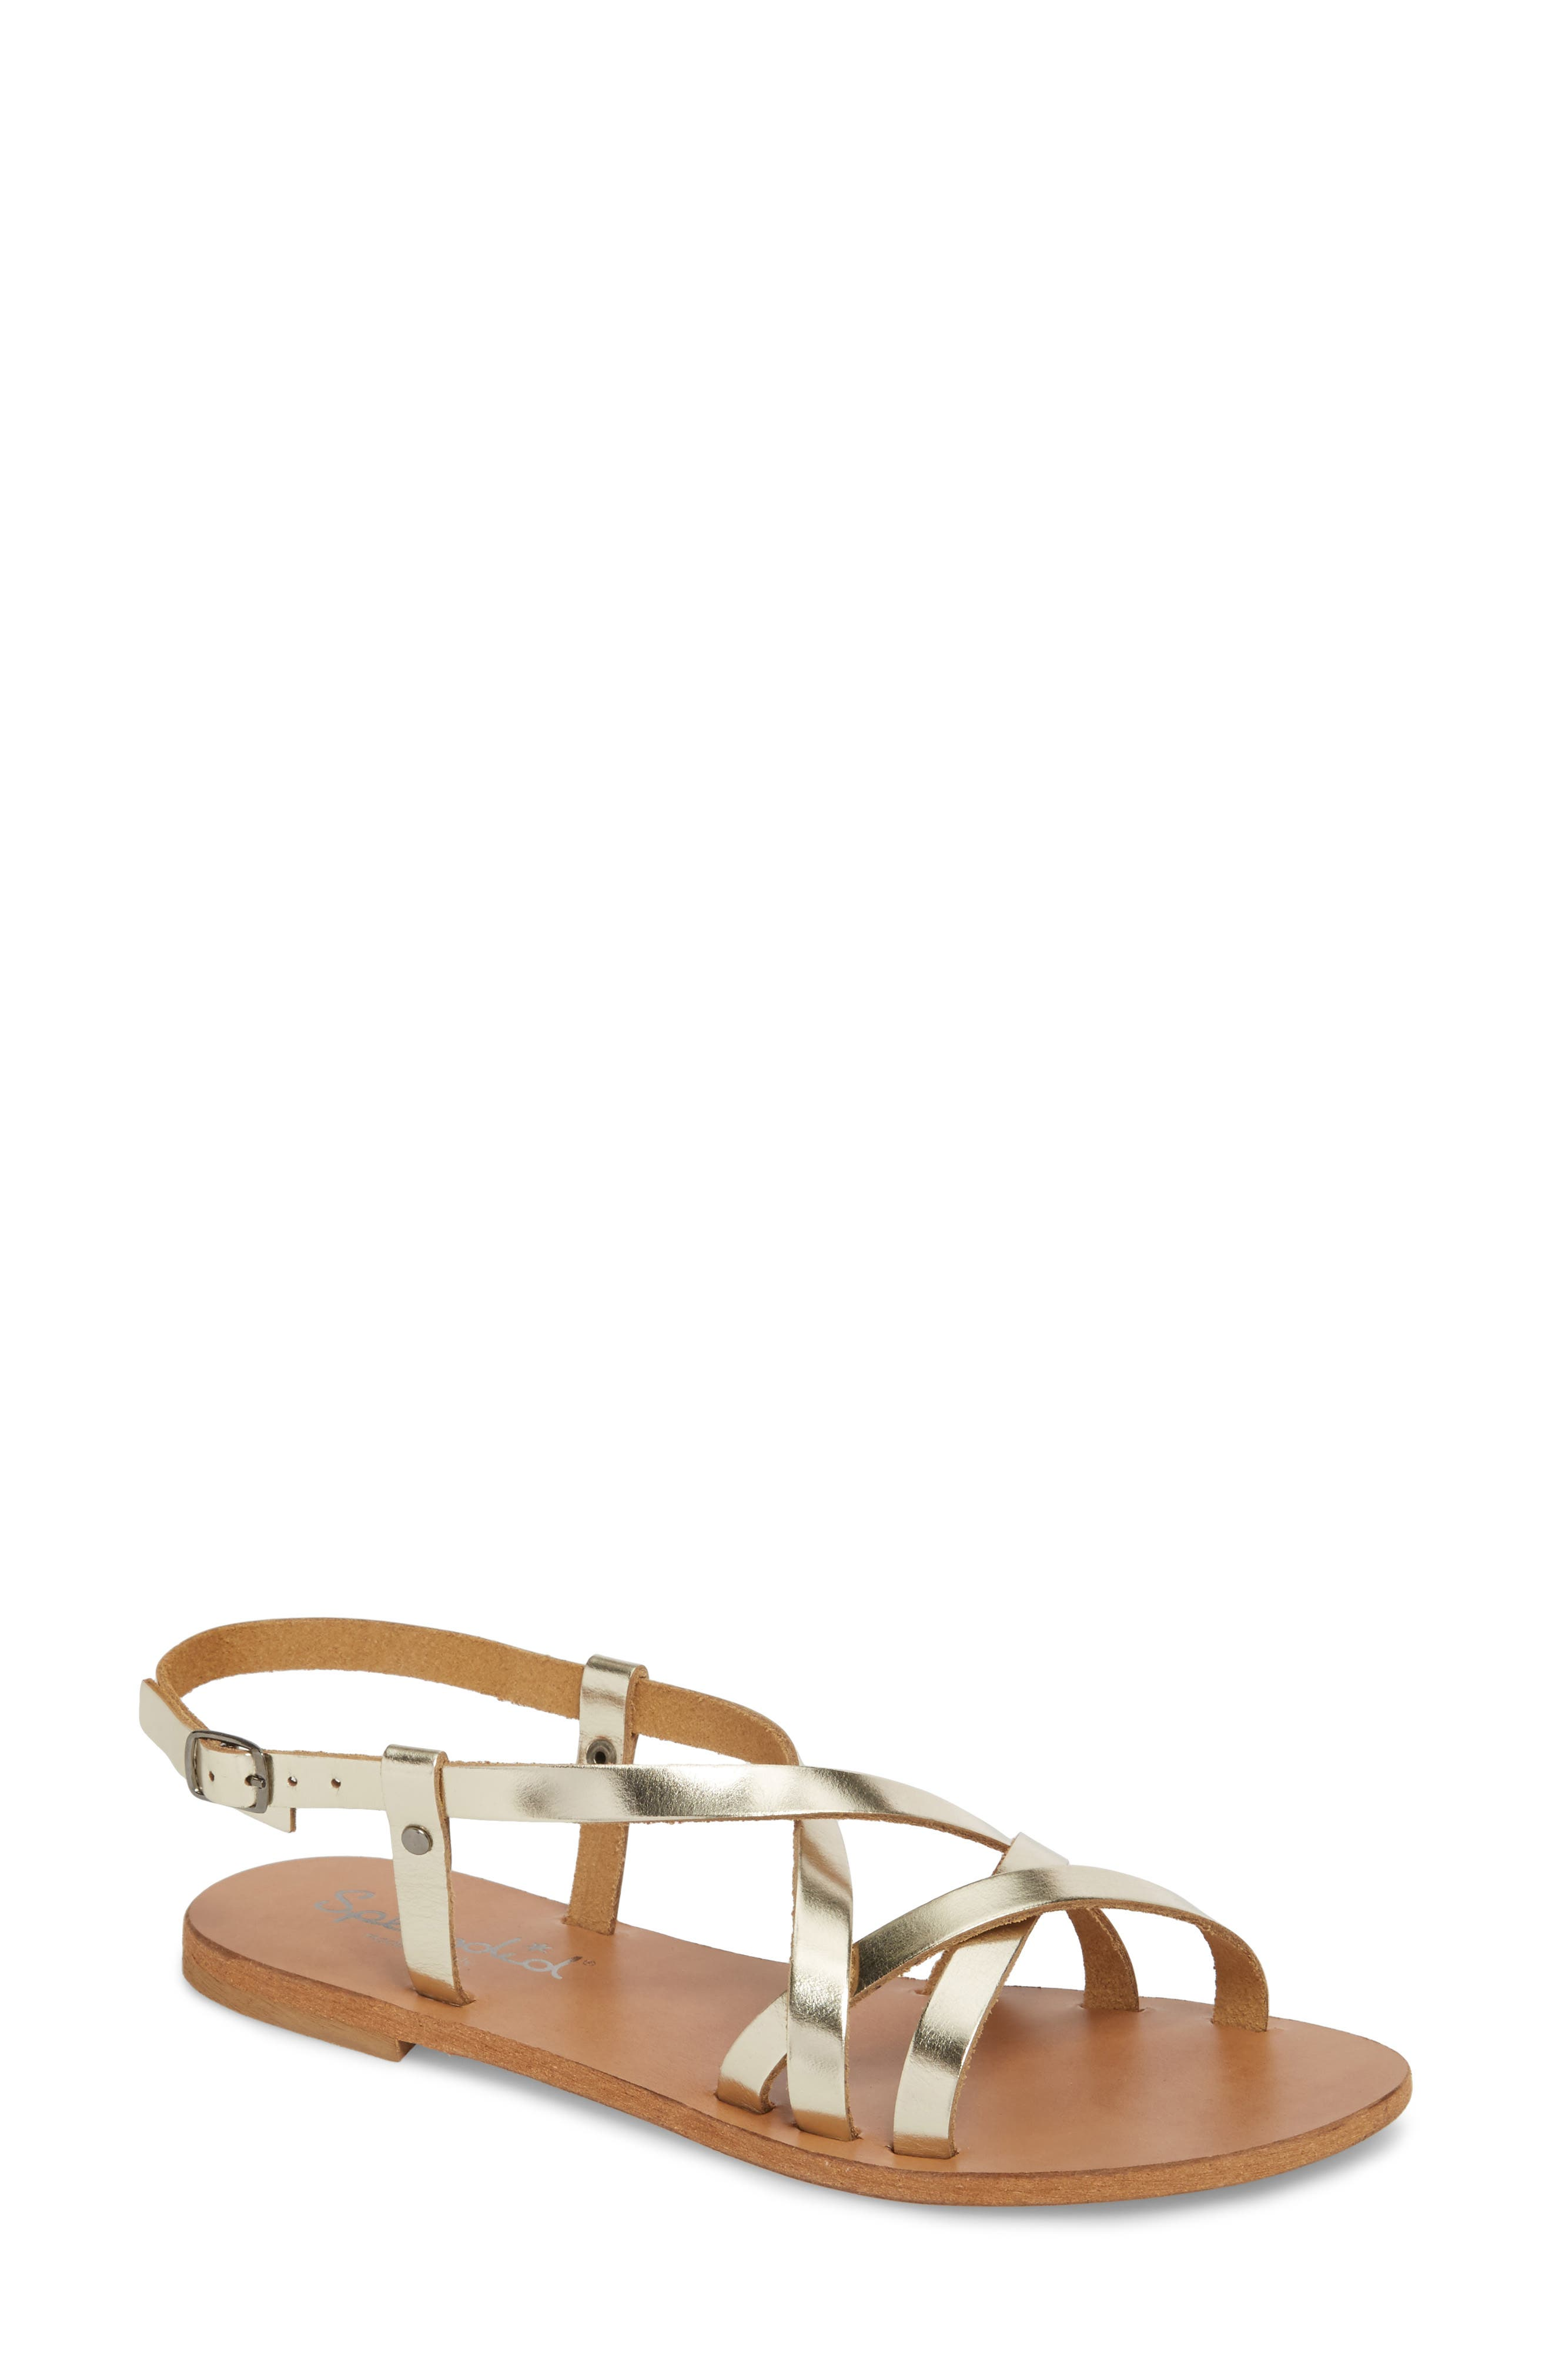 Bowen Sandal,                         Main,                         color, Platino Leather